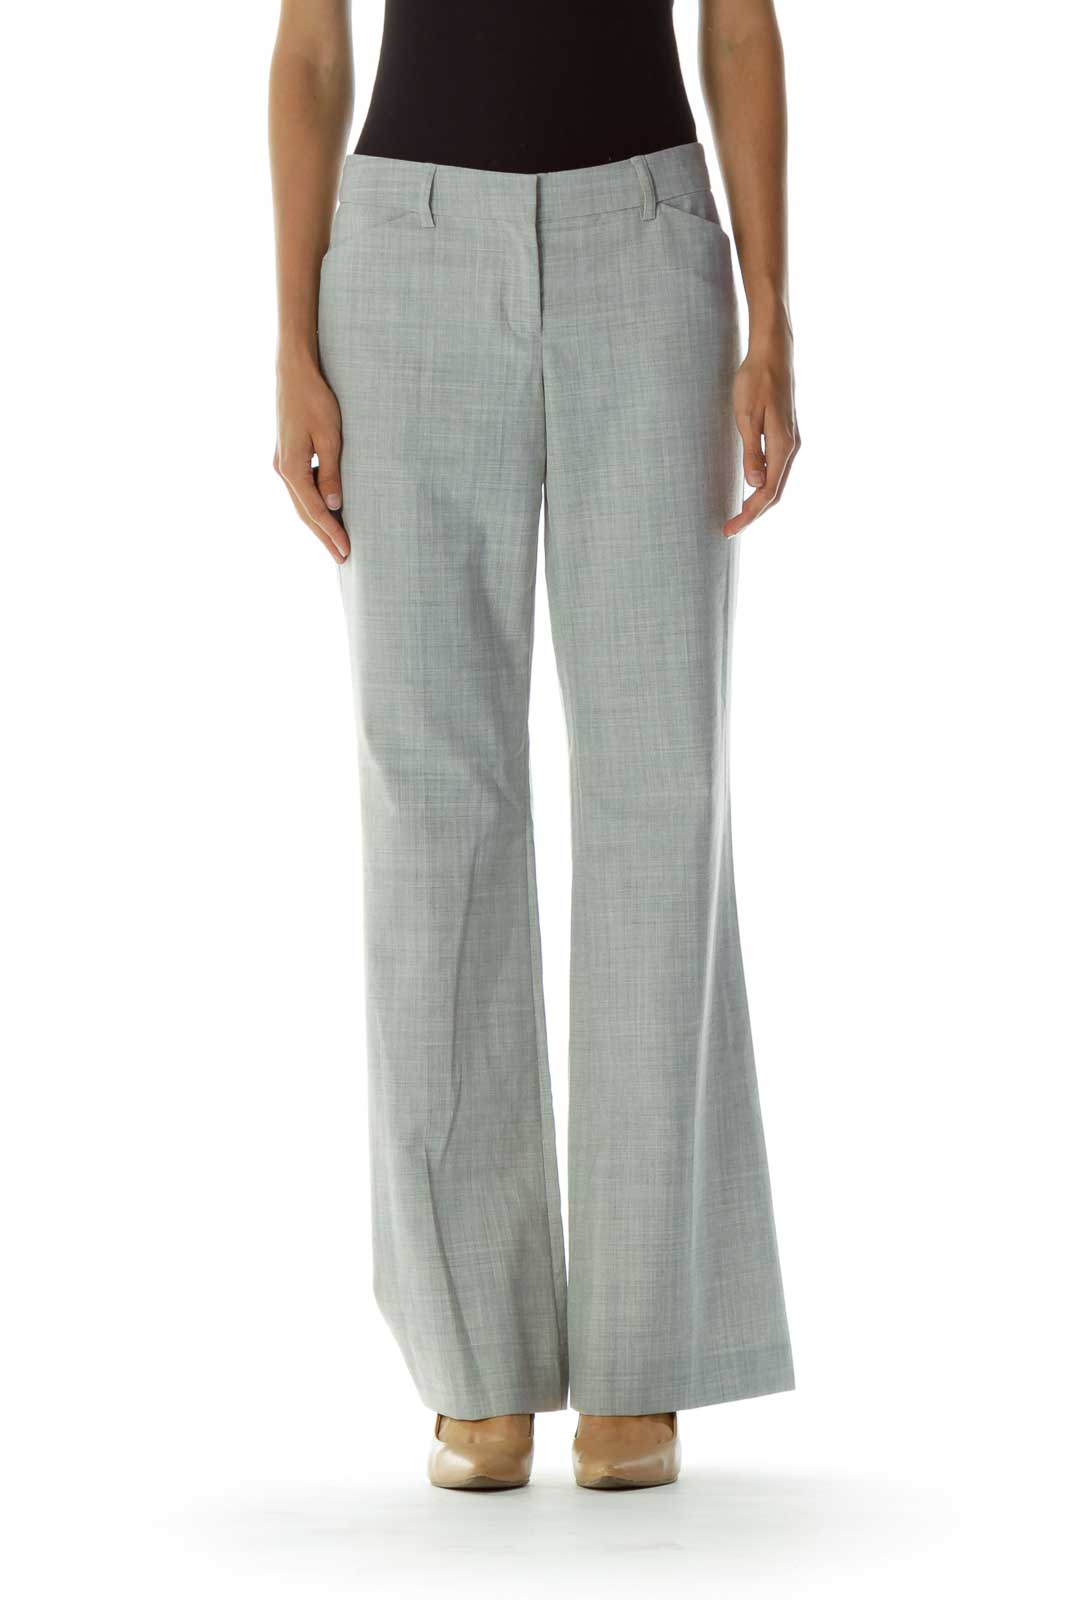 Gray Pocketed Zipper-fly Wide-Leg Pants Front